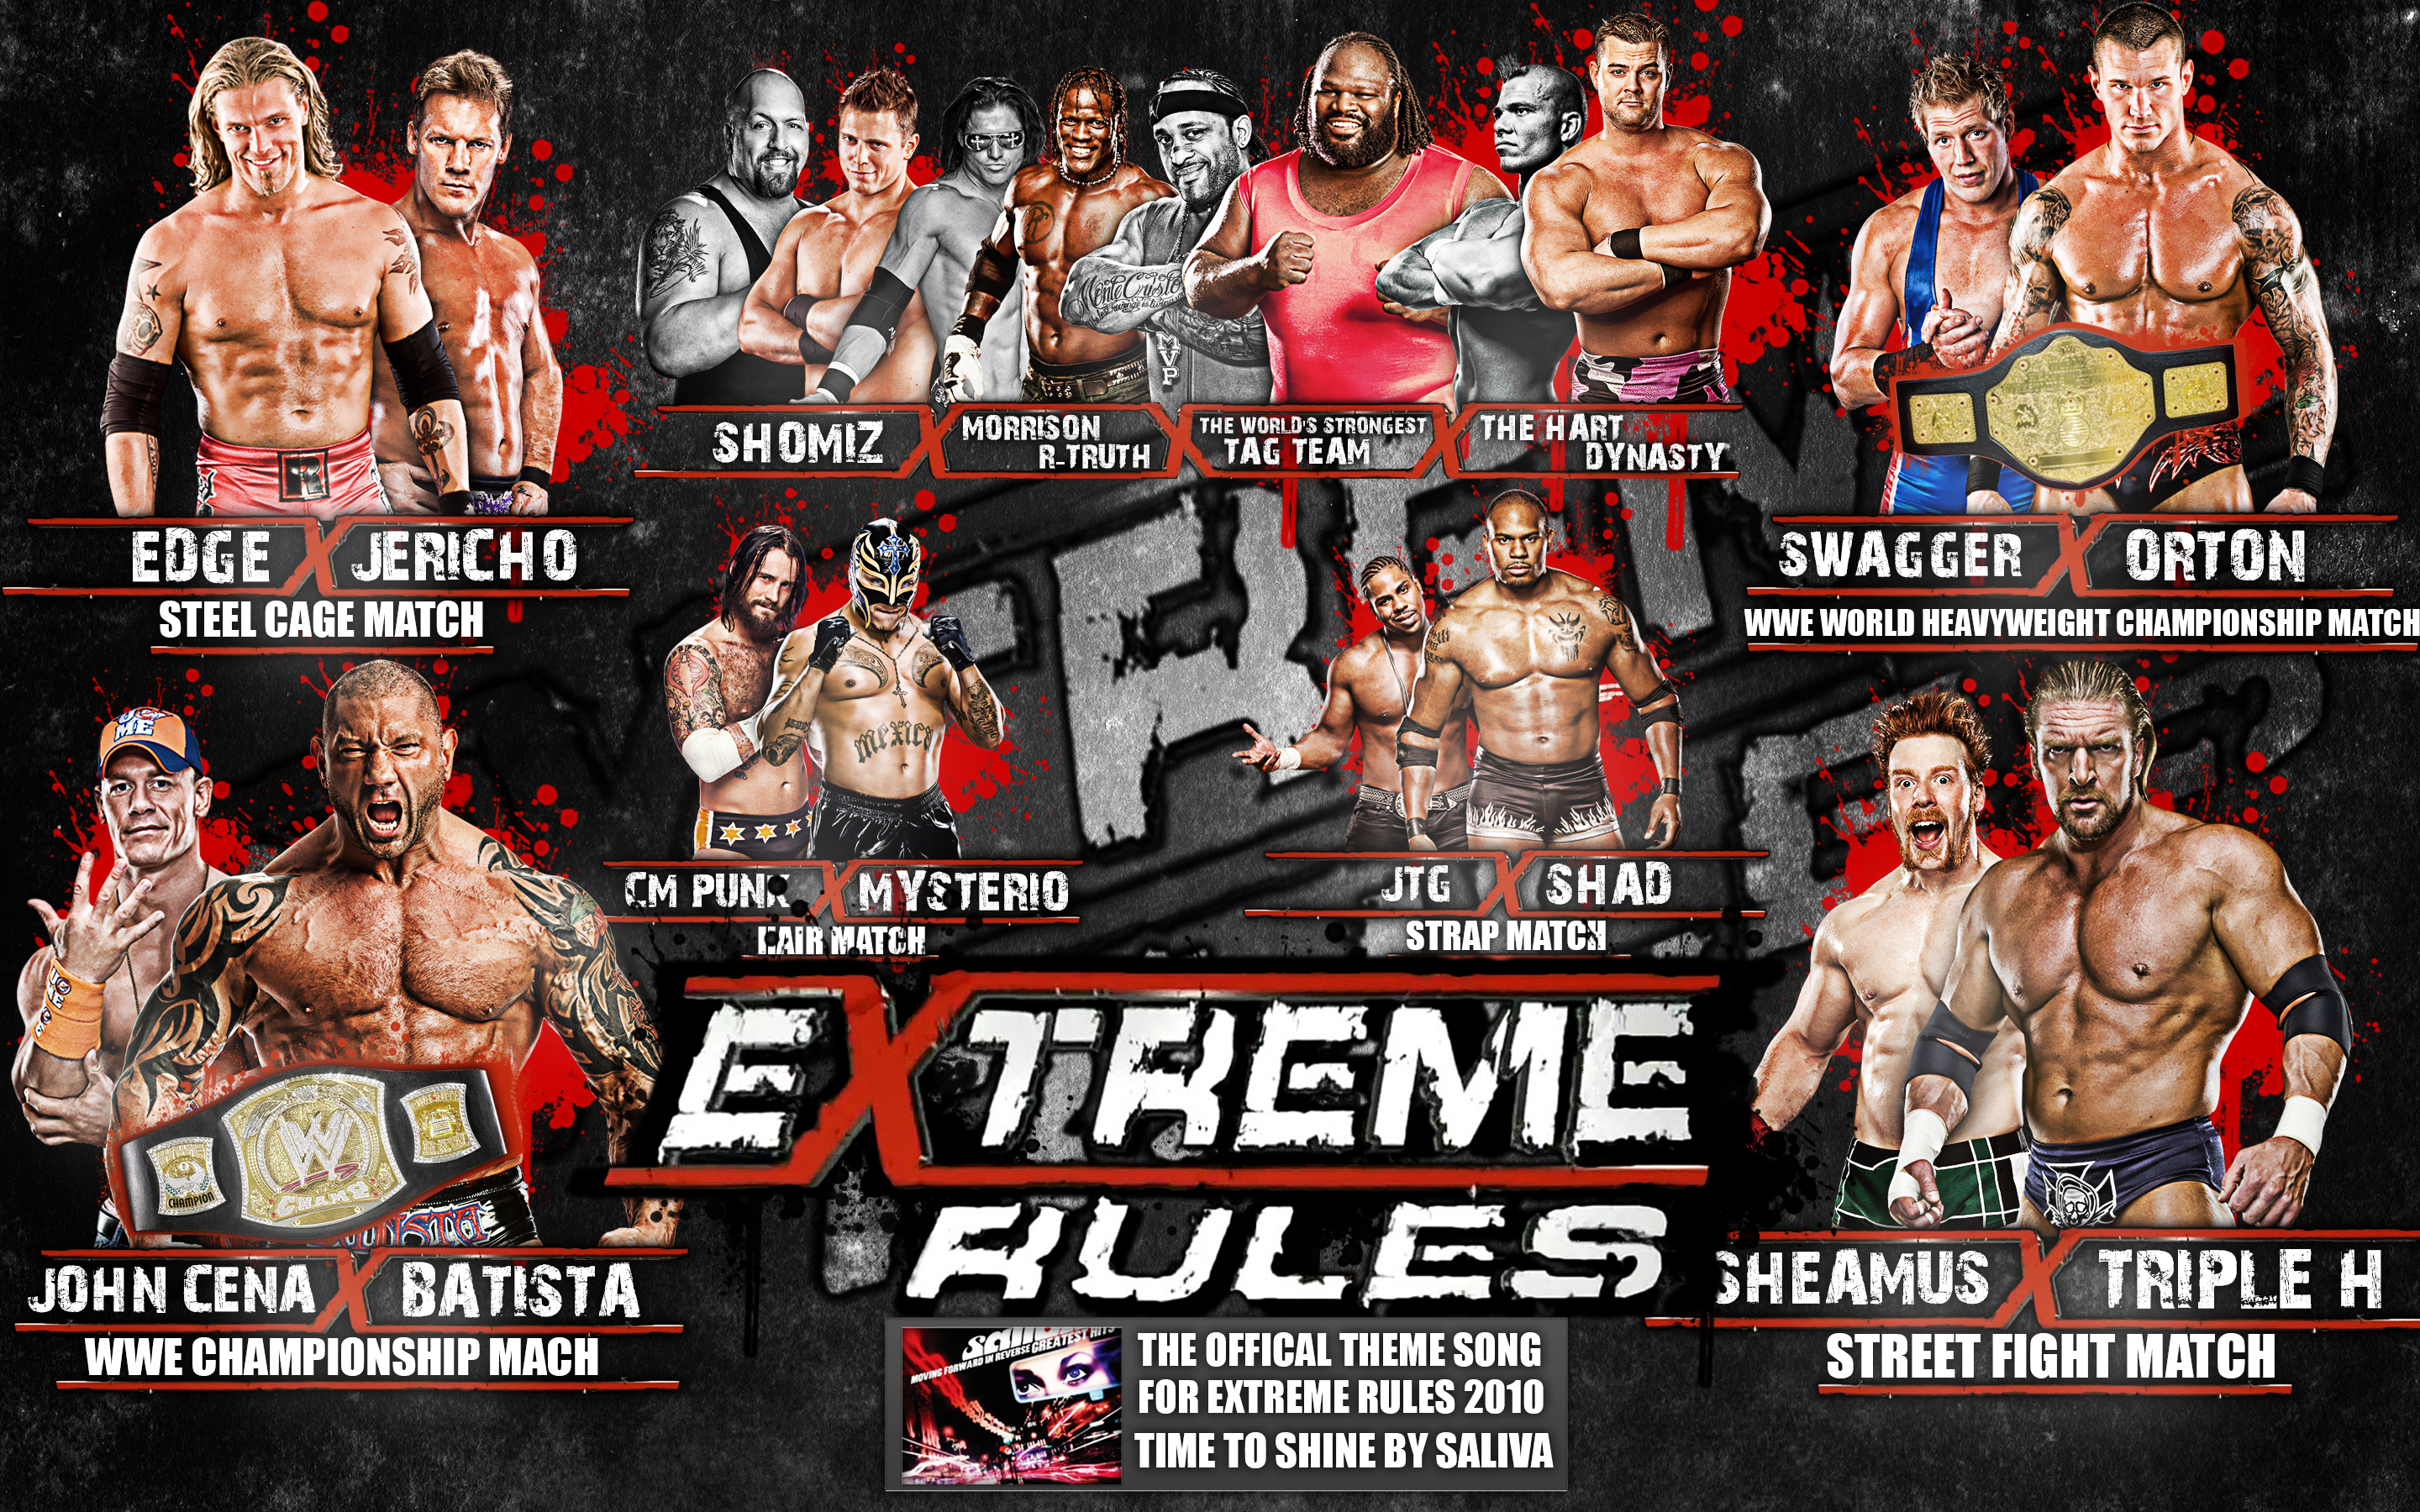 Wwe_extreme_rules__wallpaper_by_wwedesign Duq Jpg